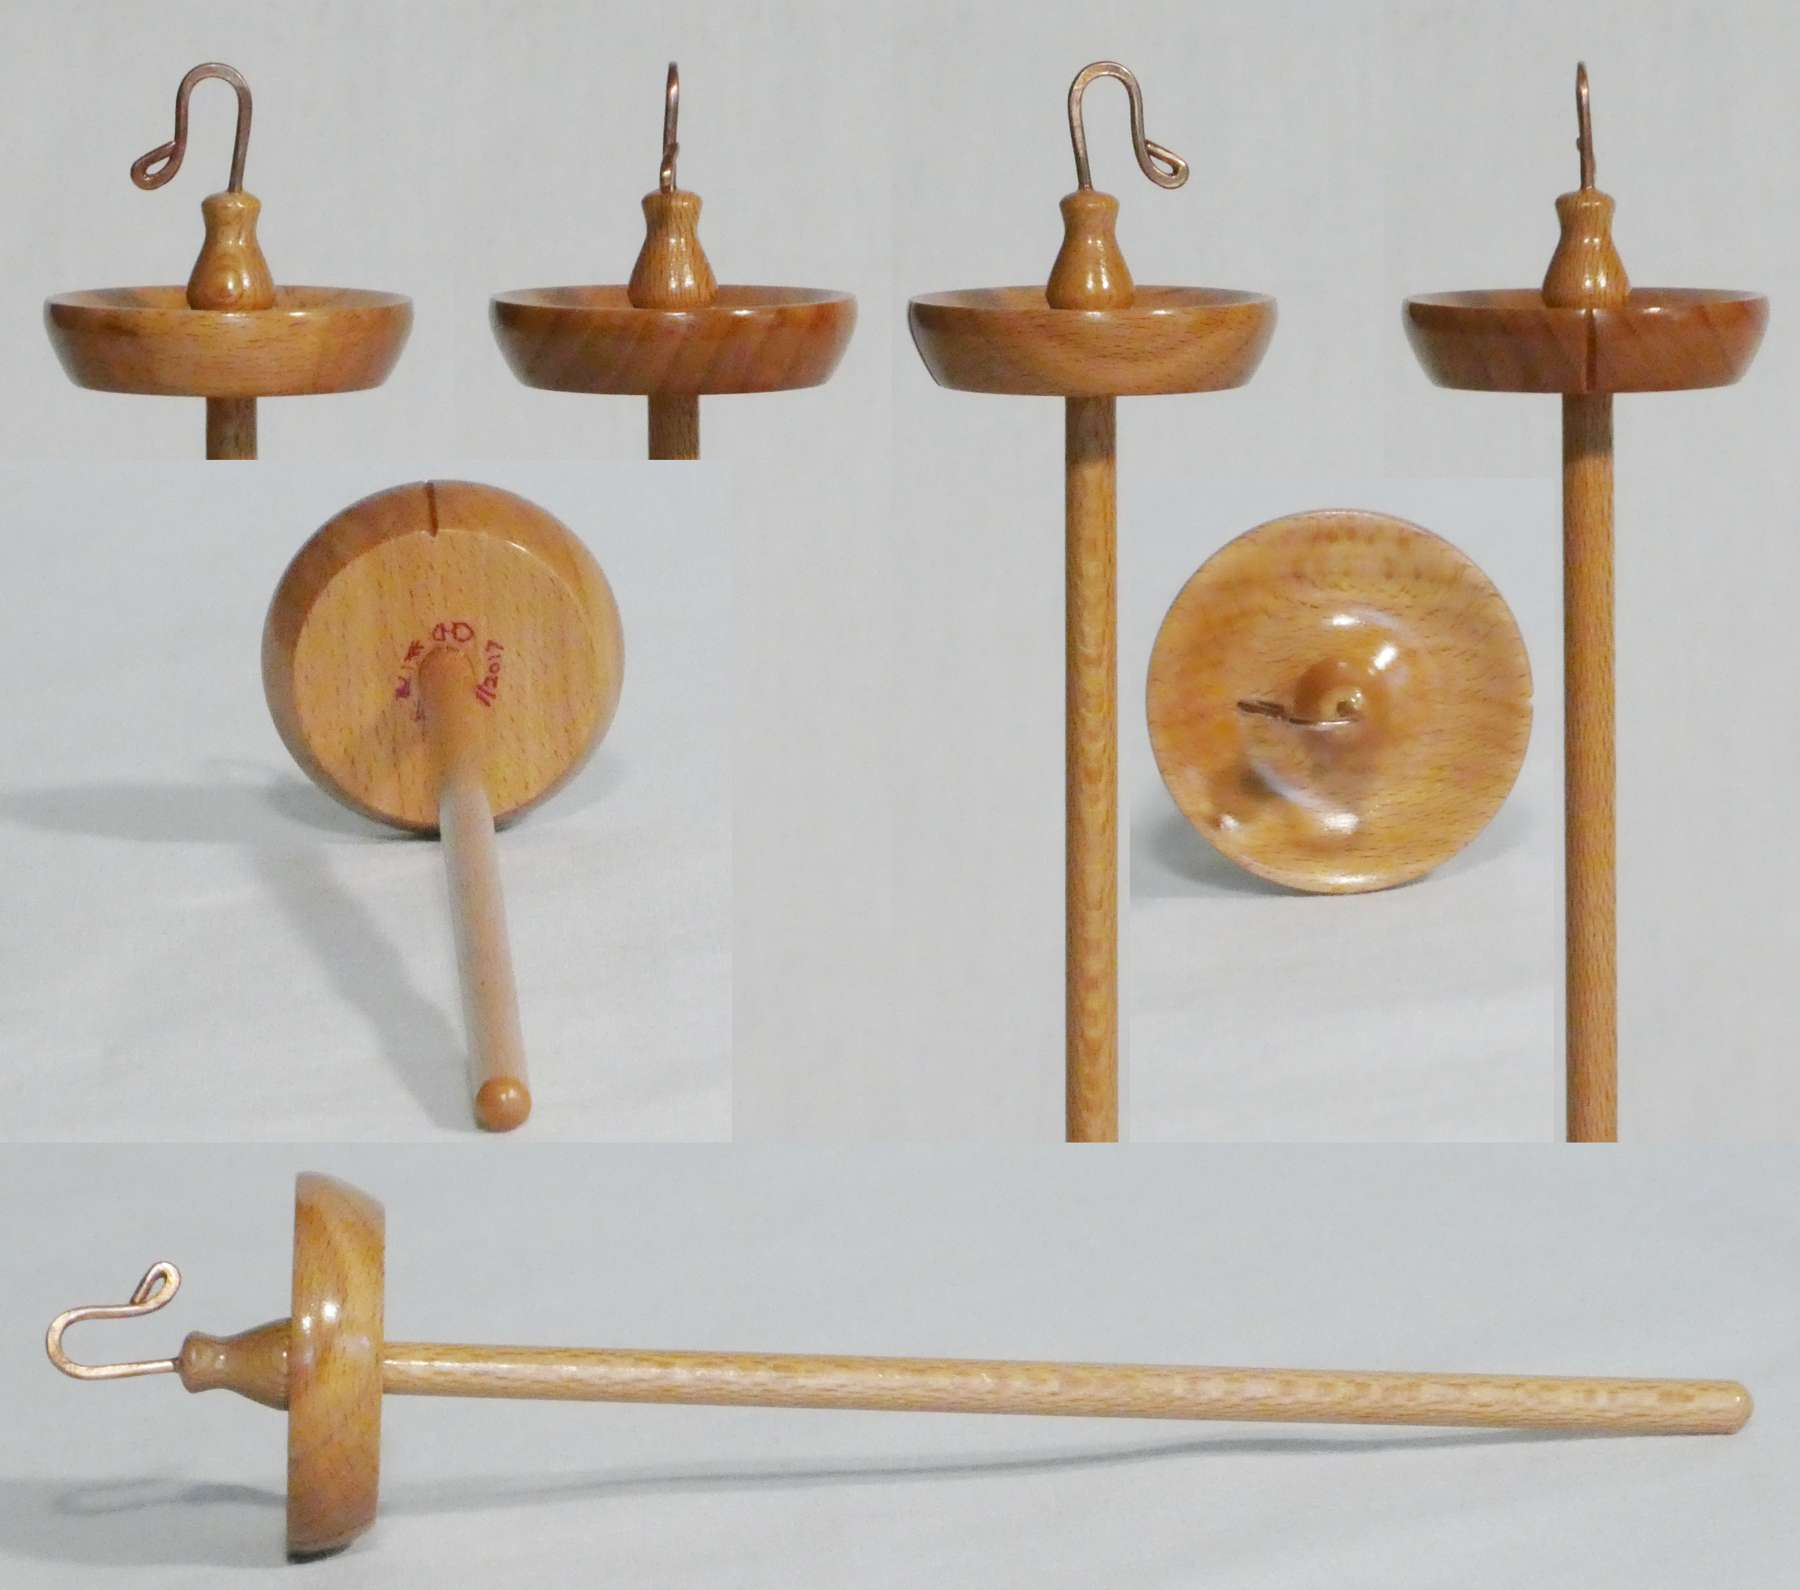 Top whorl drop spindle hand turned from Beech and Sycamore signed number 178 by Cynthia D. Haney.